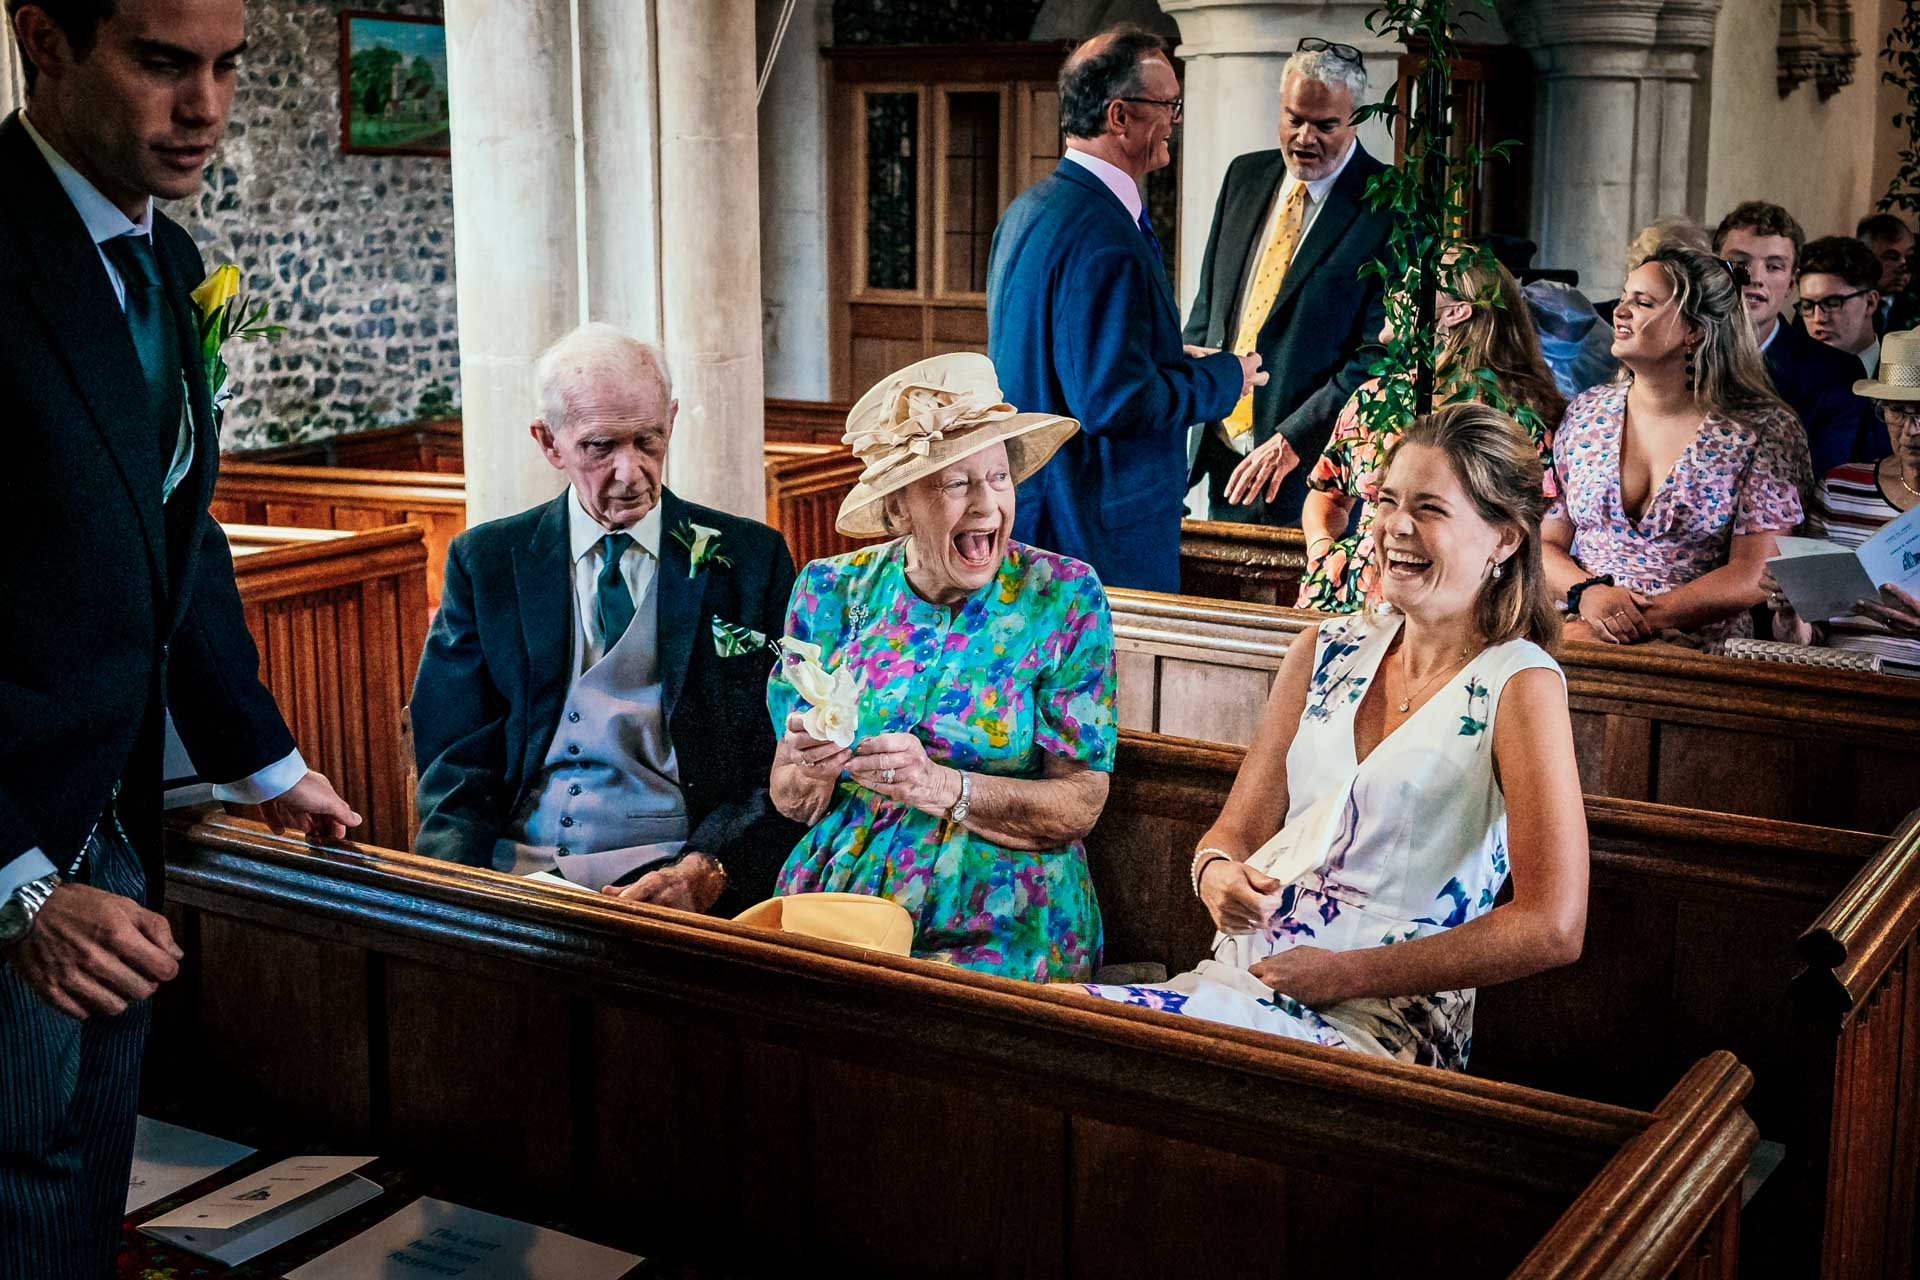 Granny laughing in the church at a Hampden House wedding